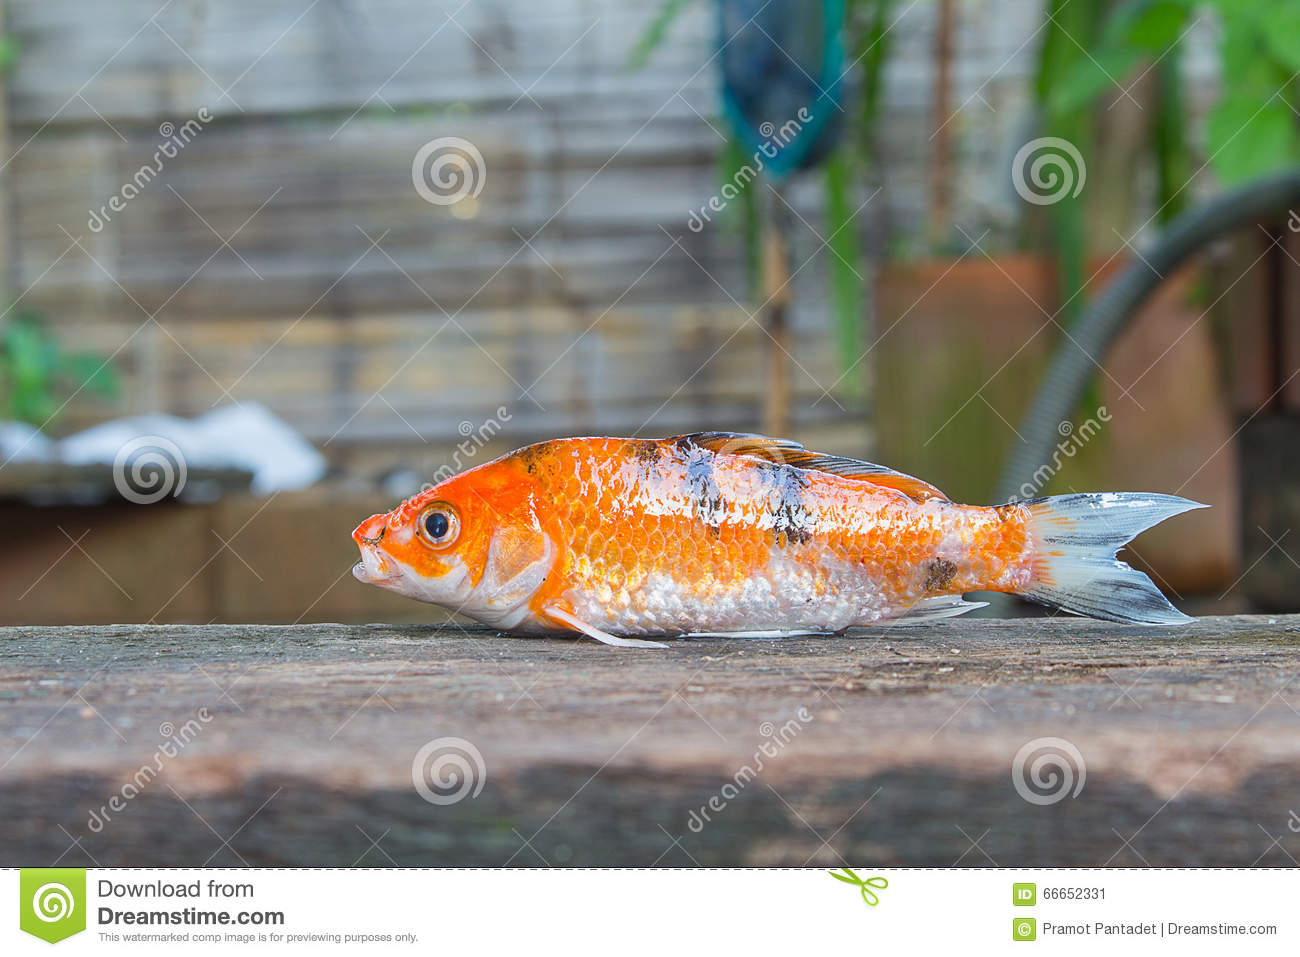 Koi Stock Photo Image 66652331